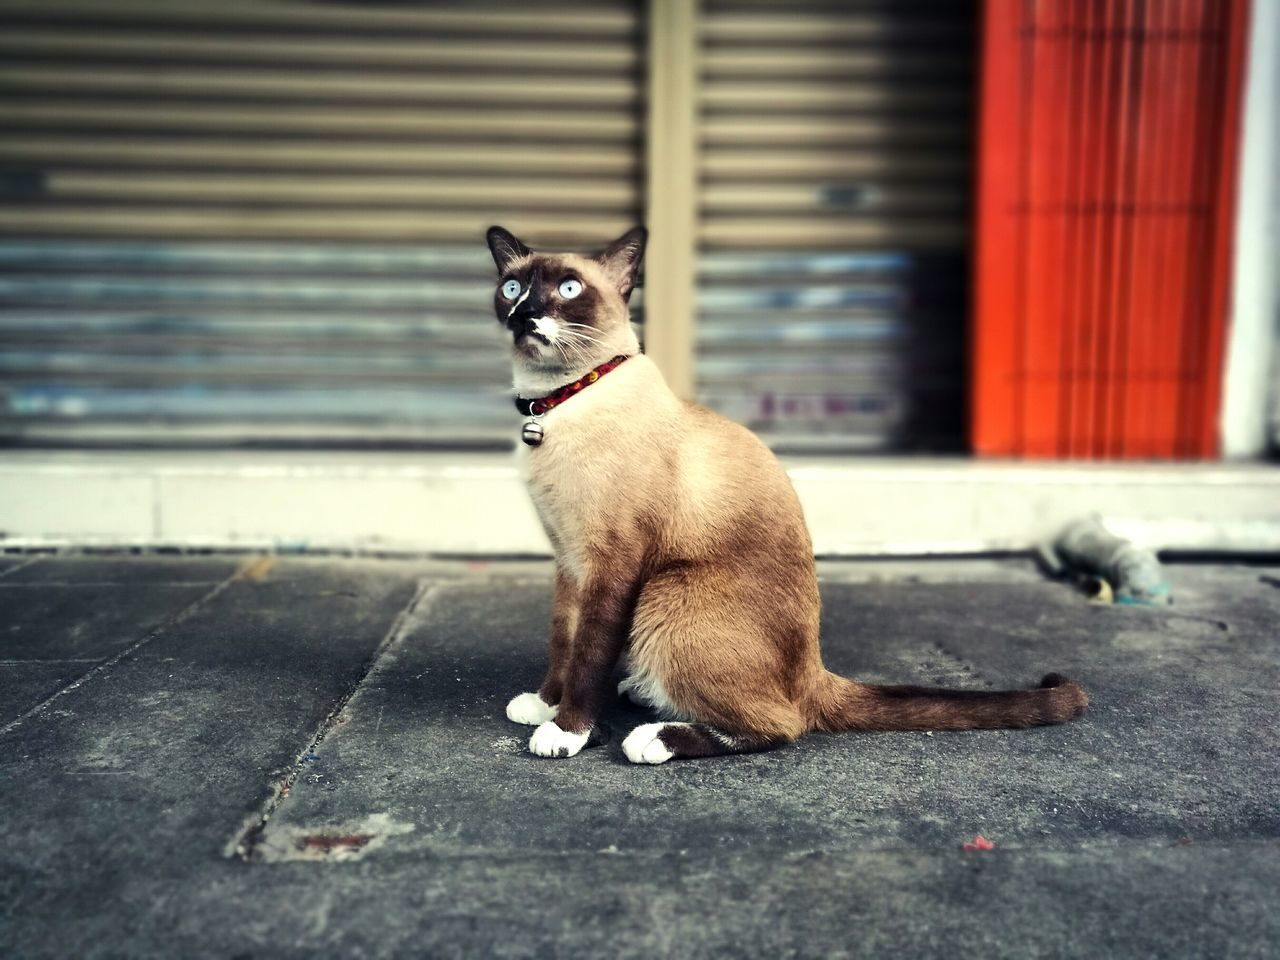 Pets Outdoors Cat Cat Lovers Cat Photography Animals Domestic Cat Streetcat Siamesecat Feline Animal Themes Wonderful ıce Cateyes Naturelovers HuaweiP9 Huaweiphotography Thailand Bangkok